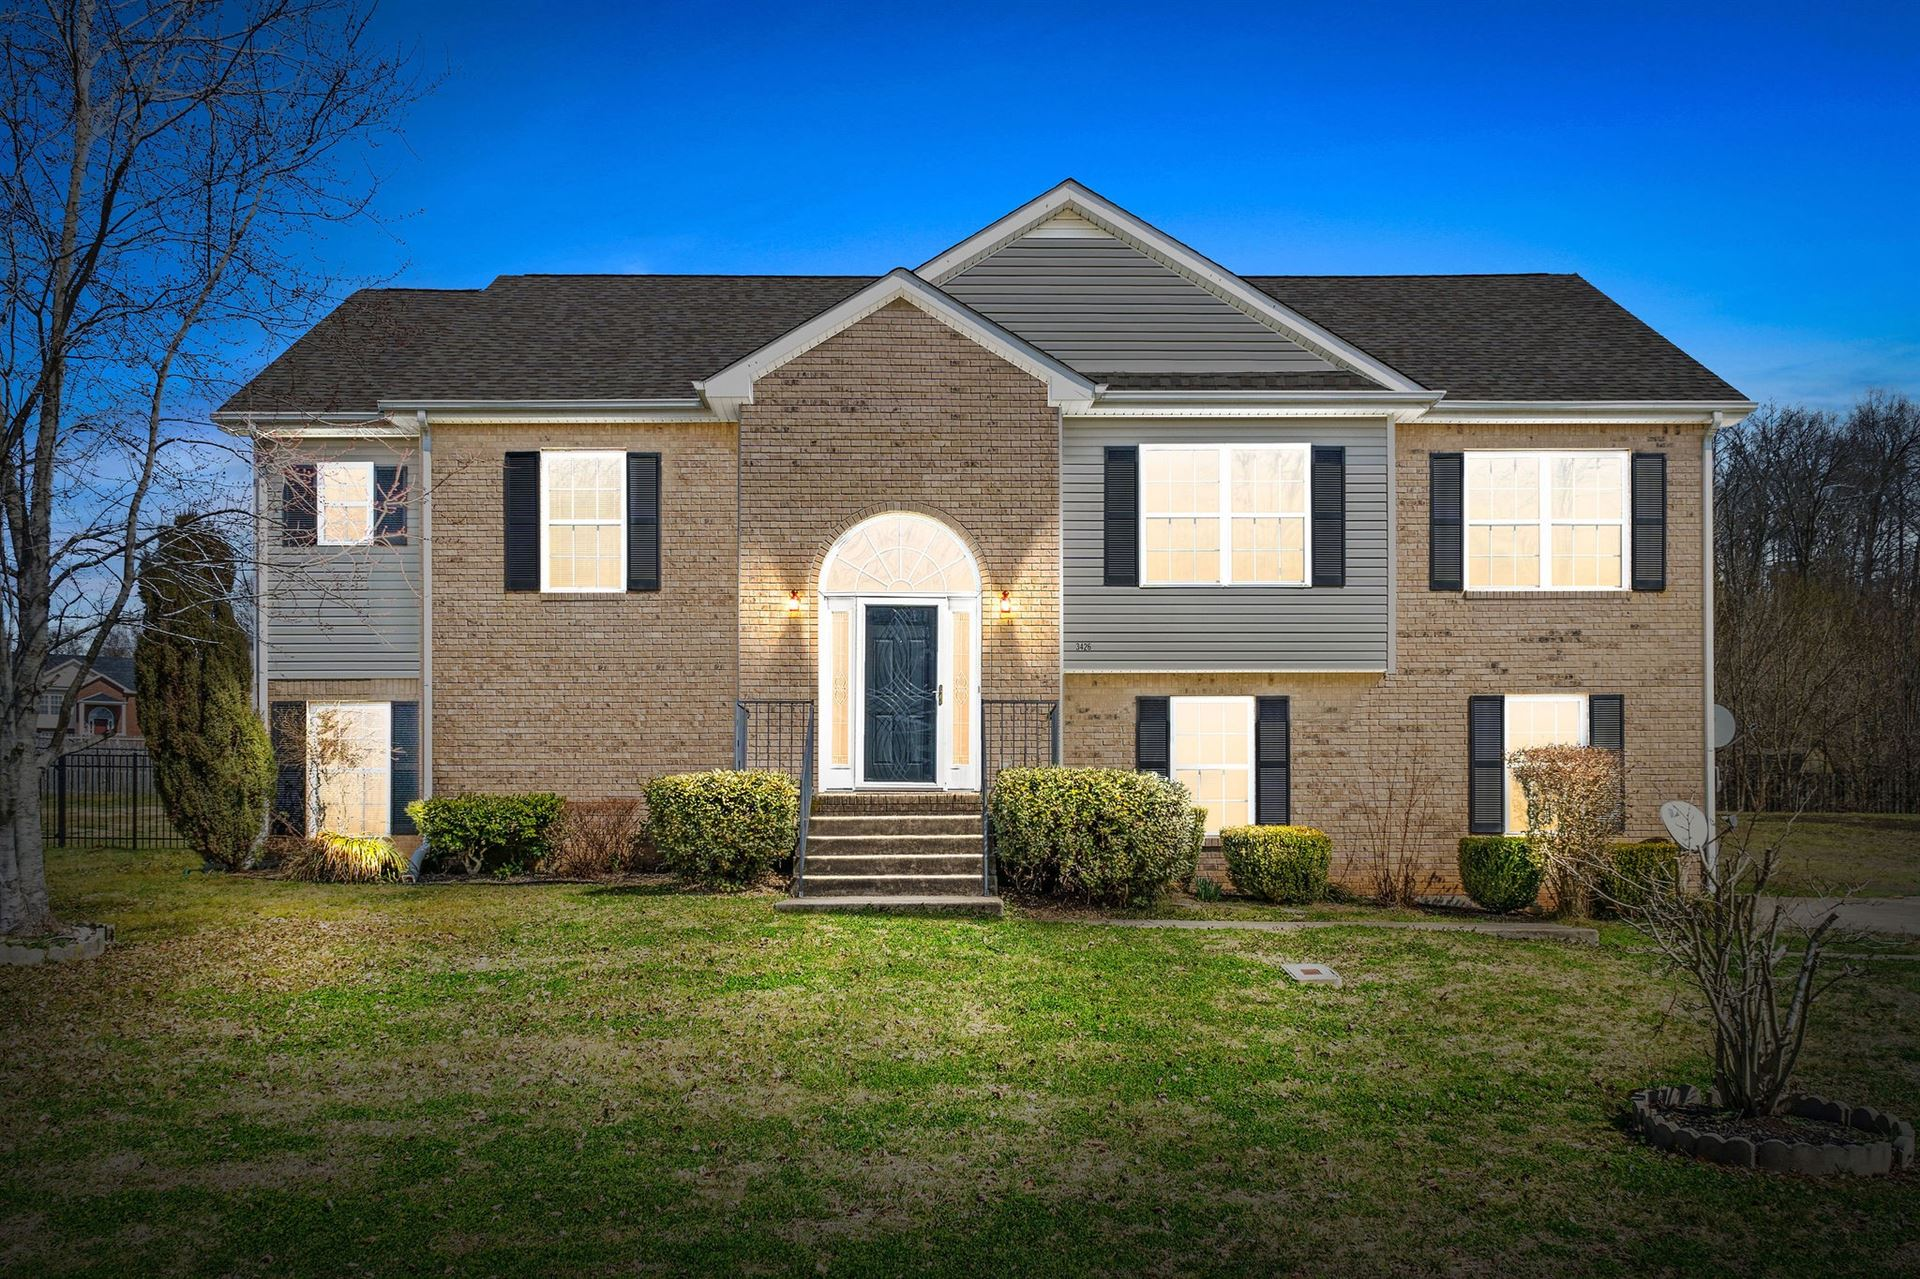 3426 N Henderson Way, Clarksville, TN 37042 - MLS#: 2233007